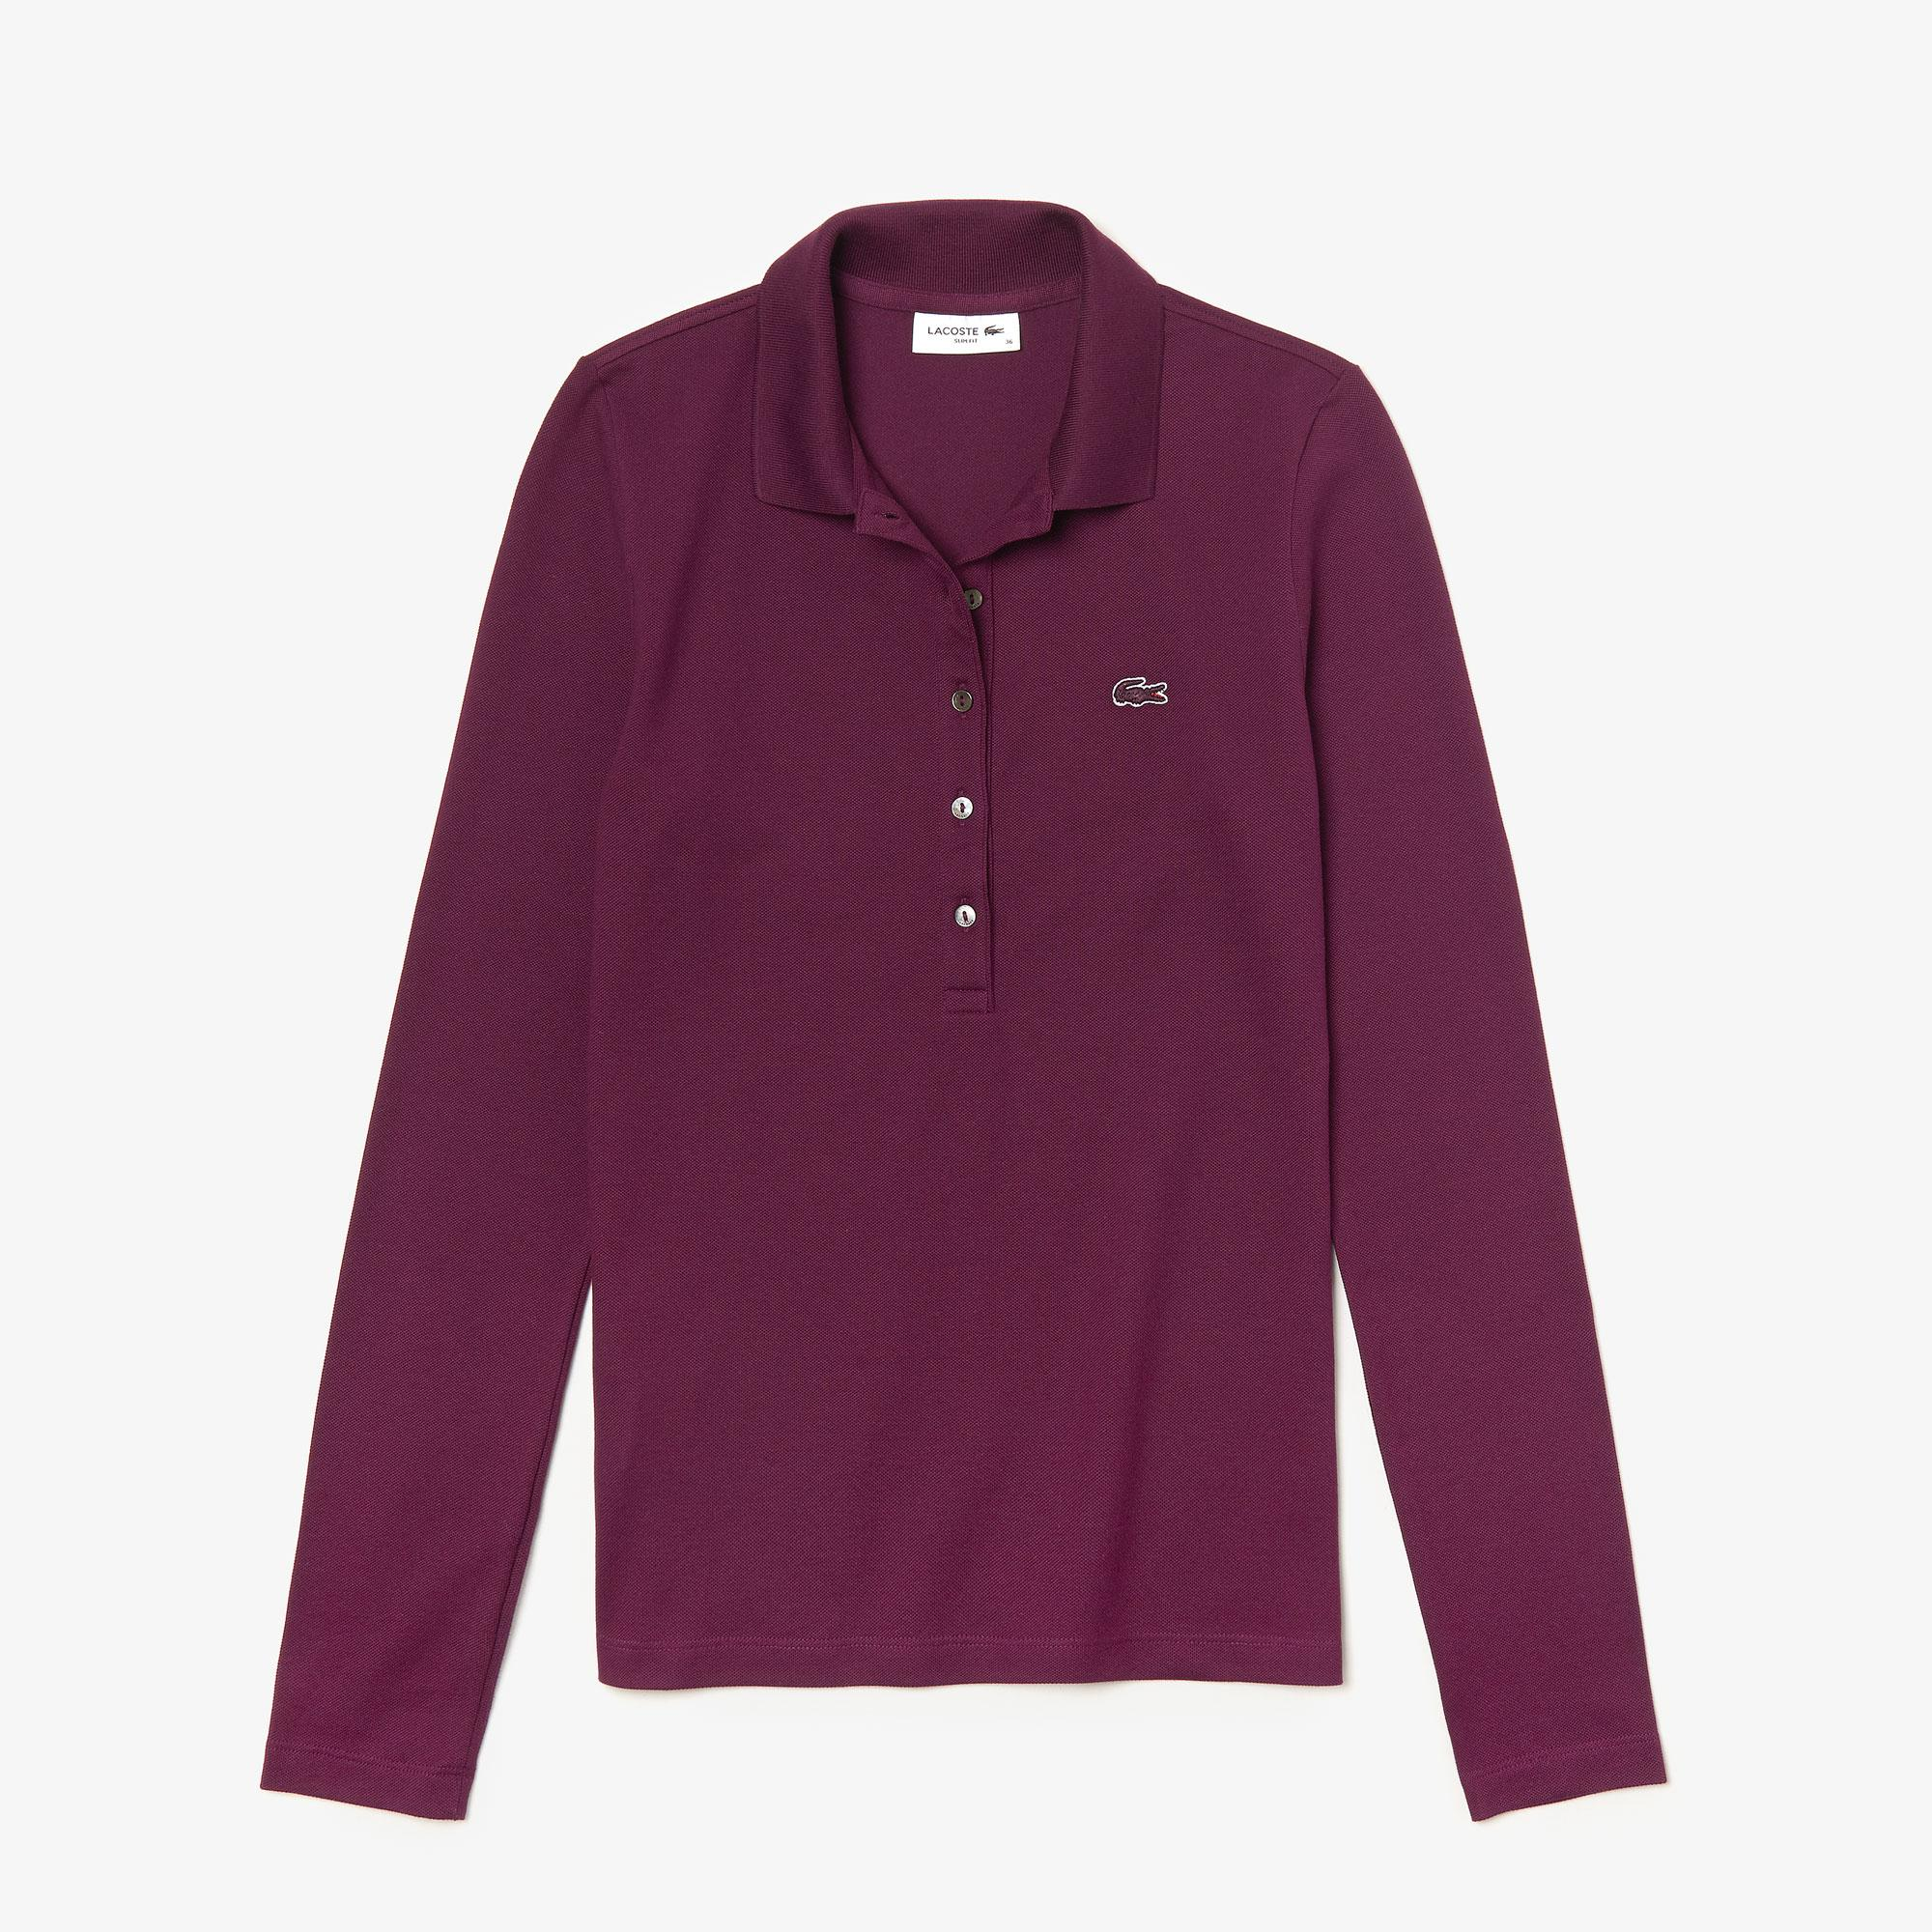 Lacoste Women's Slim Fit Stretch Mini Piqué Polo